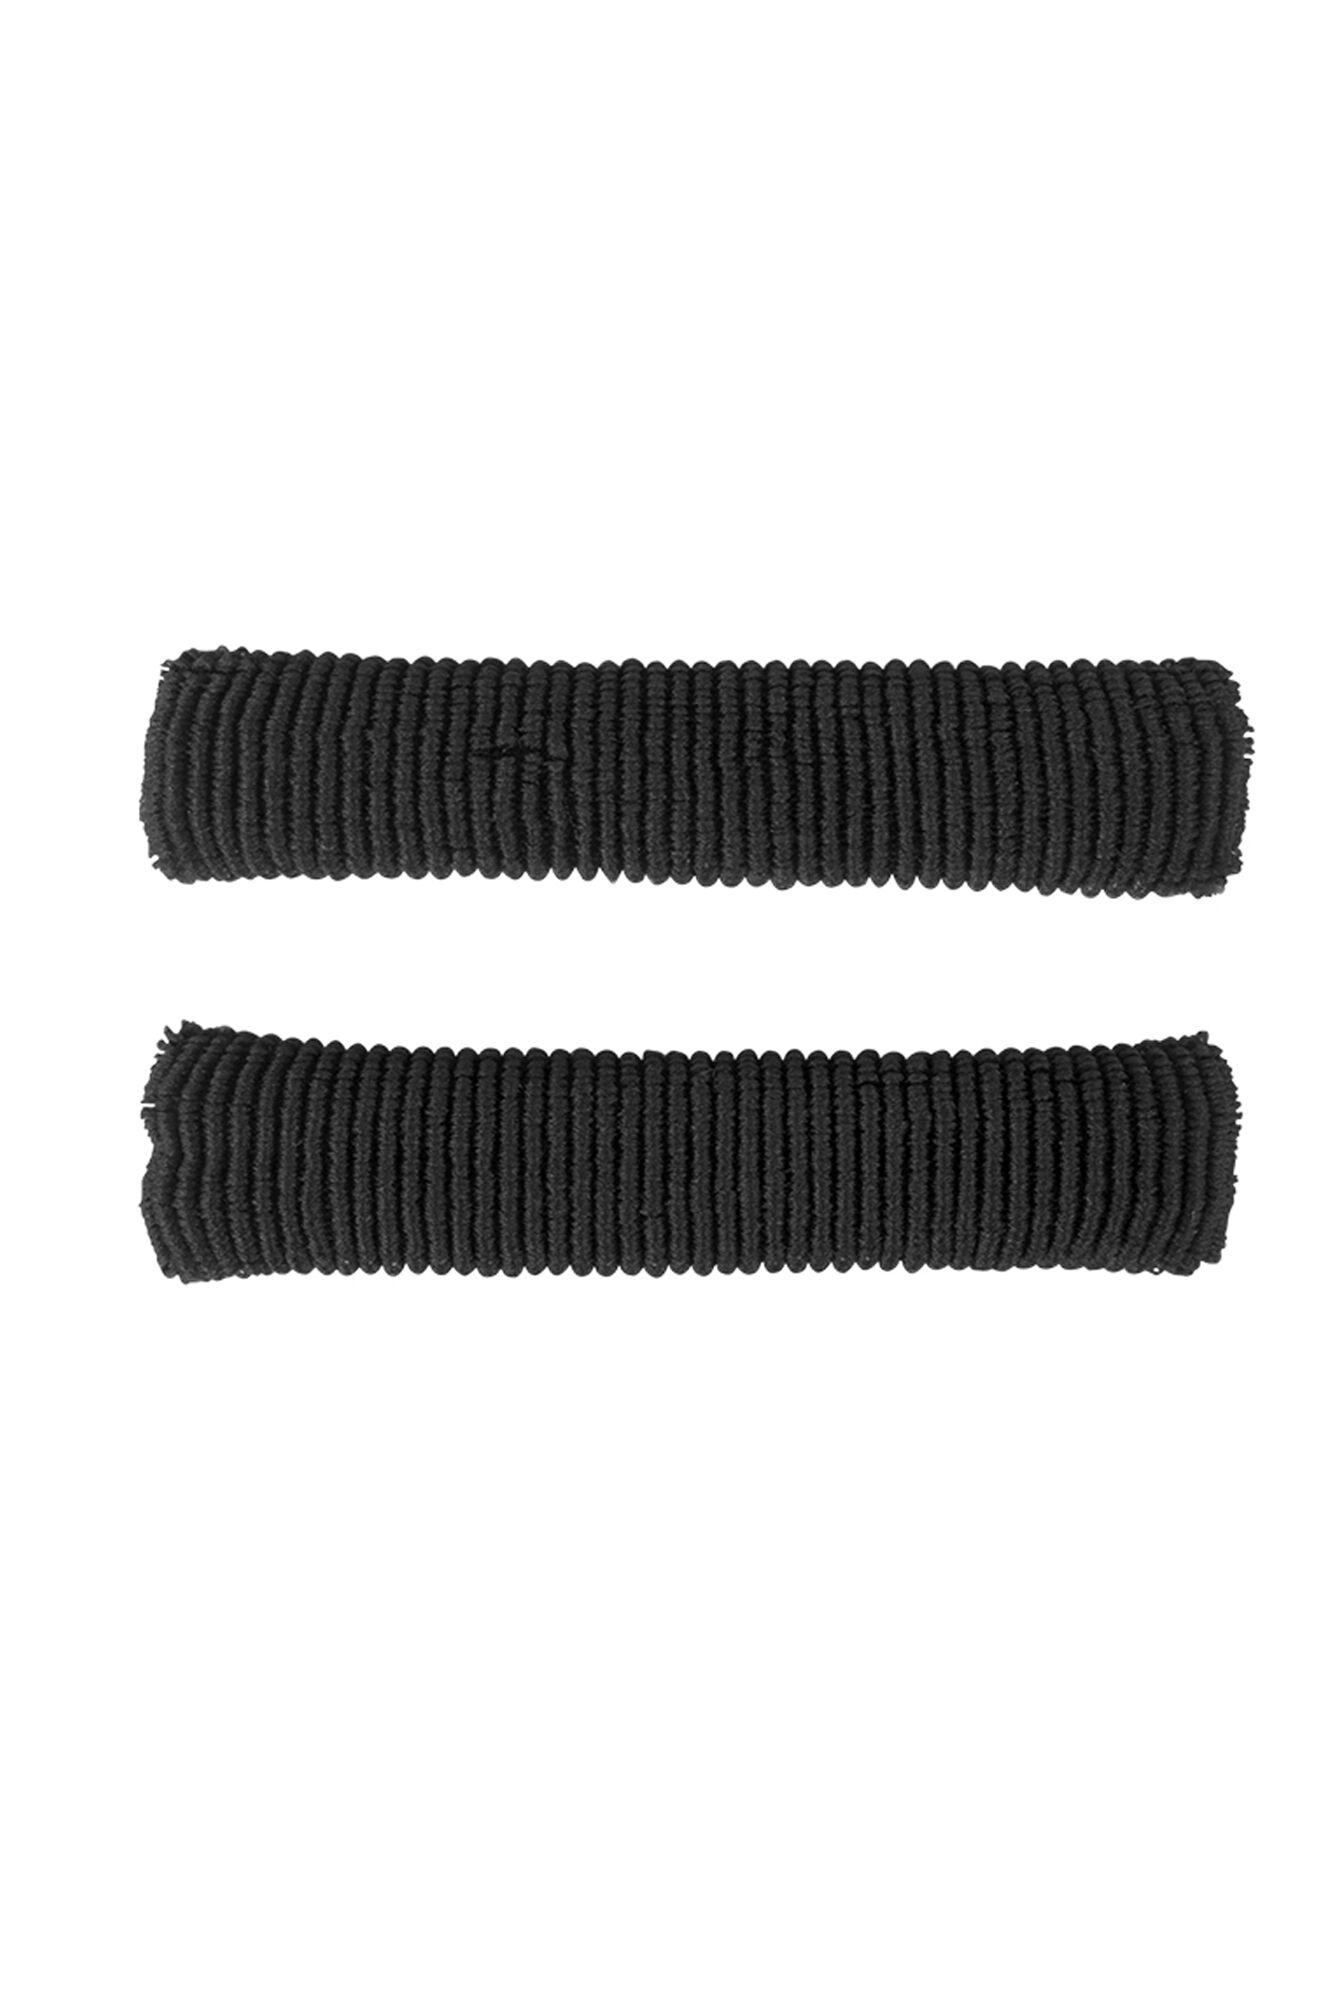 ENVII 2 PACK ELASTIC BAND